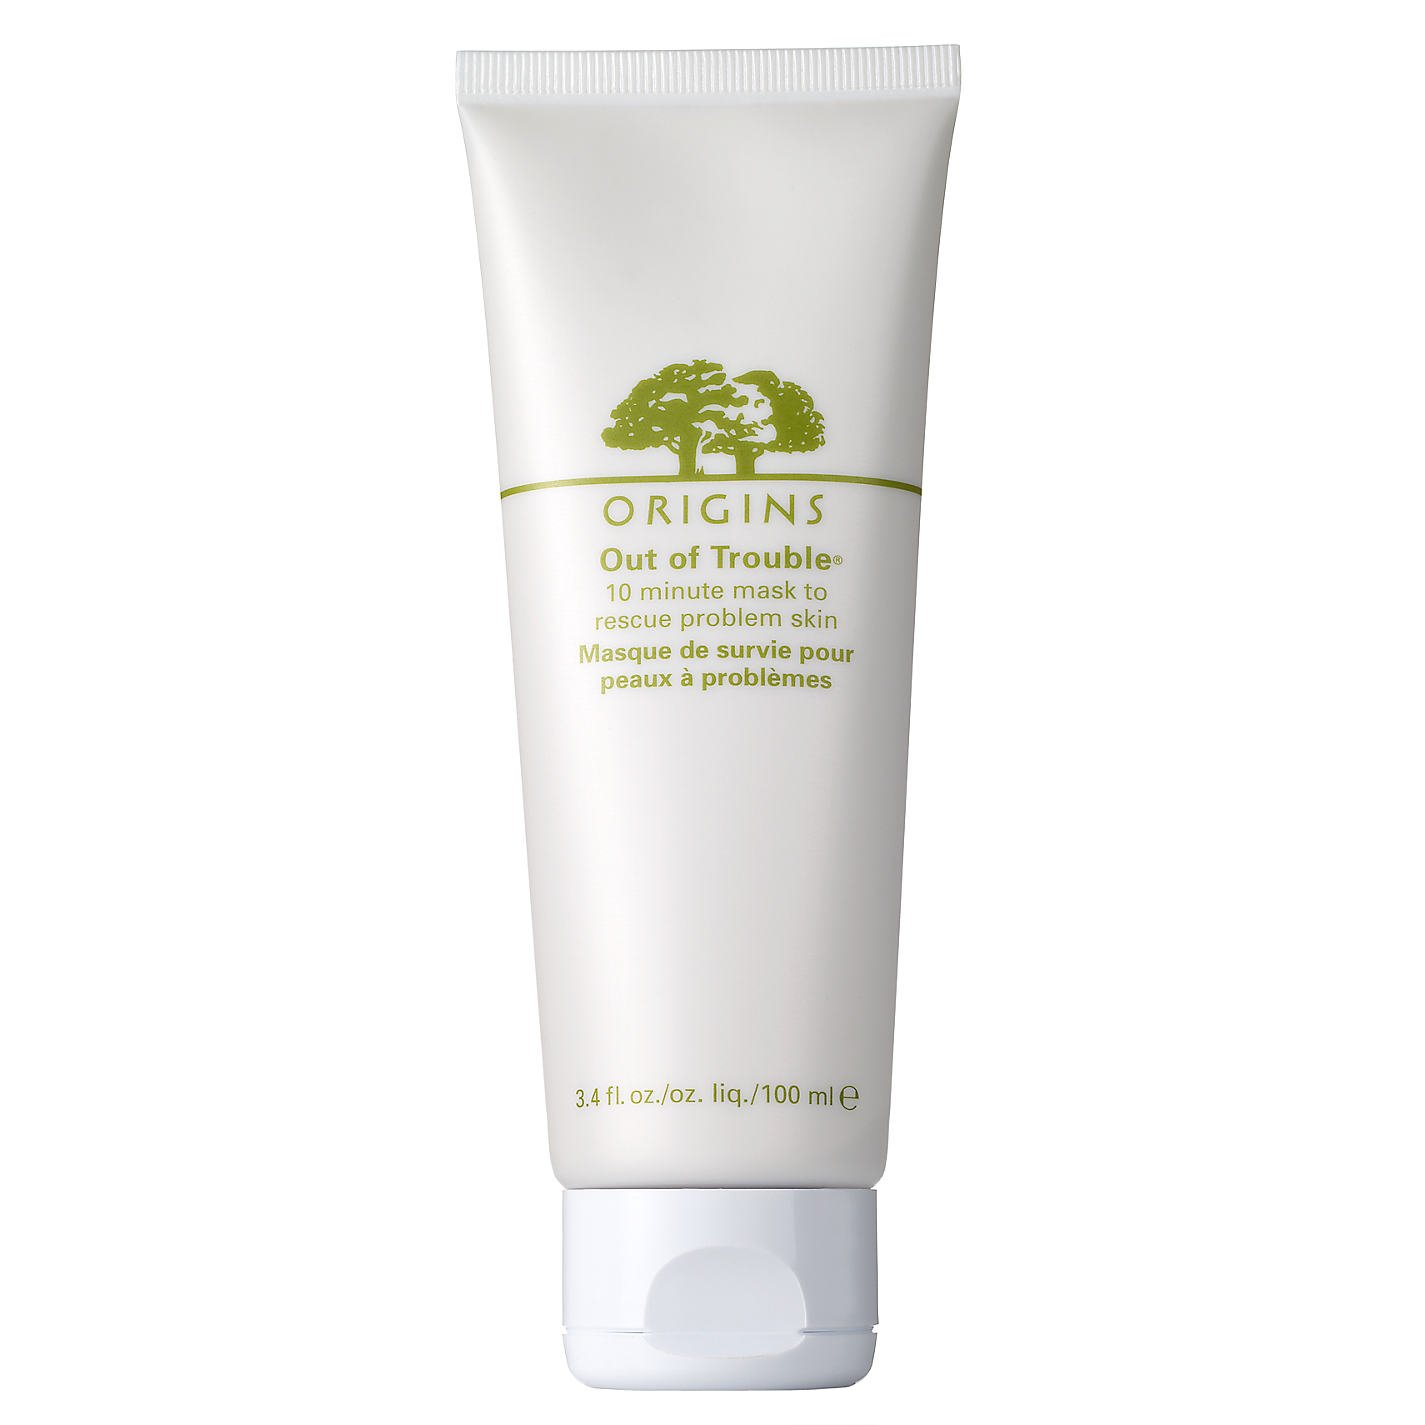 Out of Trouble 10 Minute Mask To Rescue Problem Skin 100ml/3.4oz Origins 079818308011